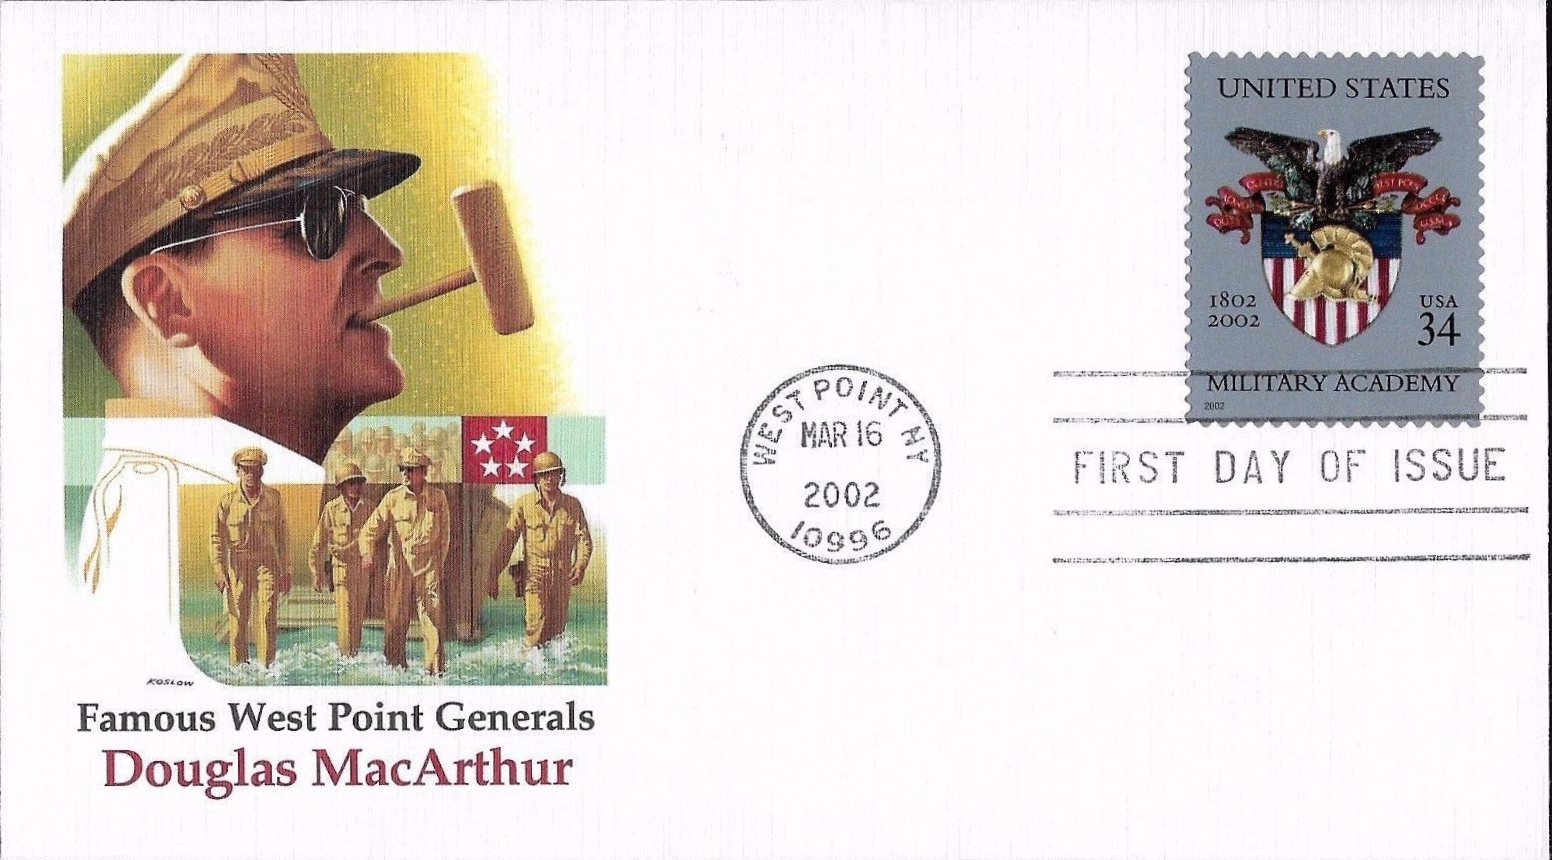 United States - Scott #3560 (2002) first day cover, Fleetwood cachet